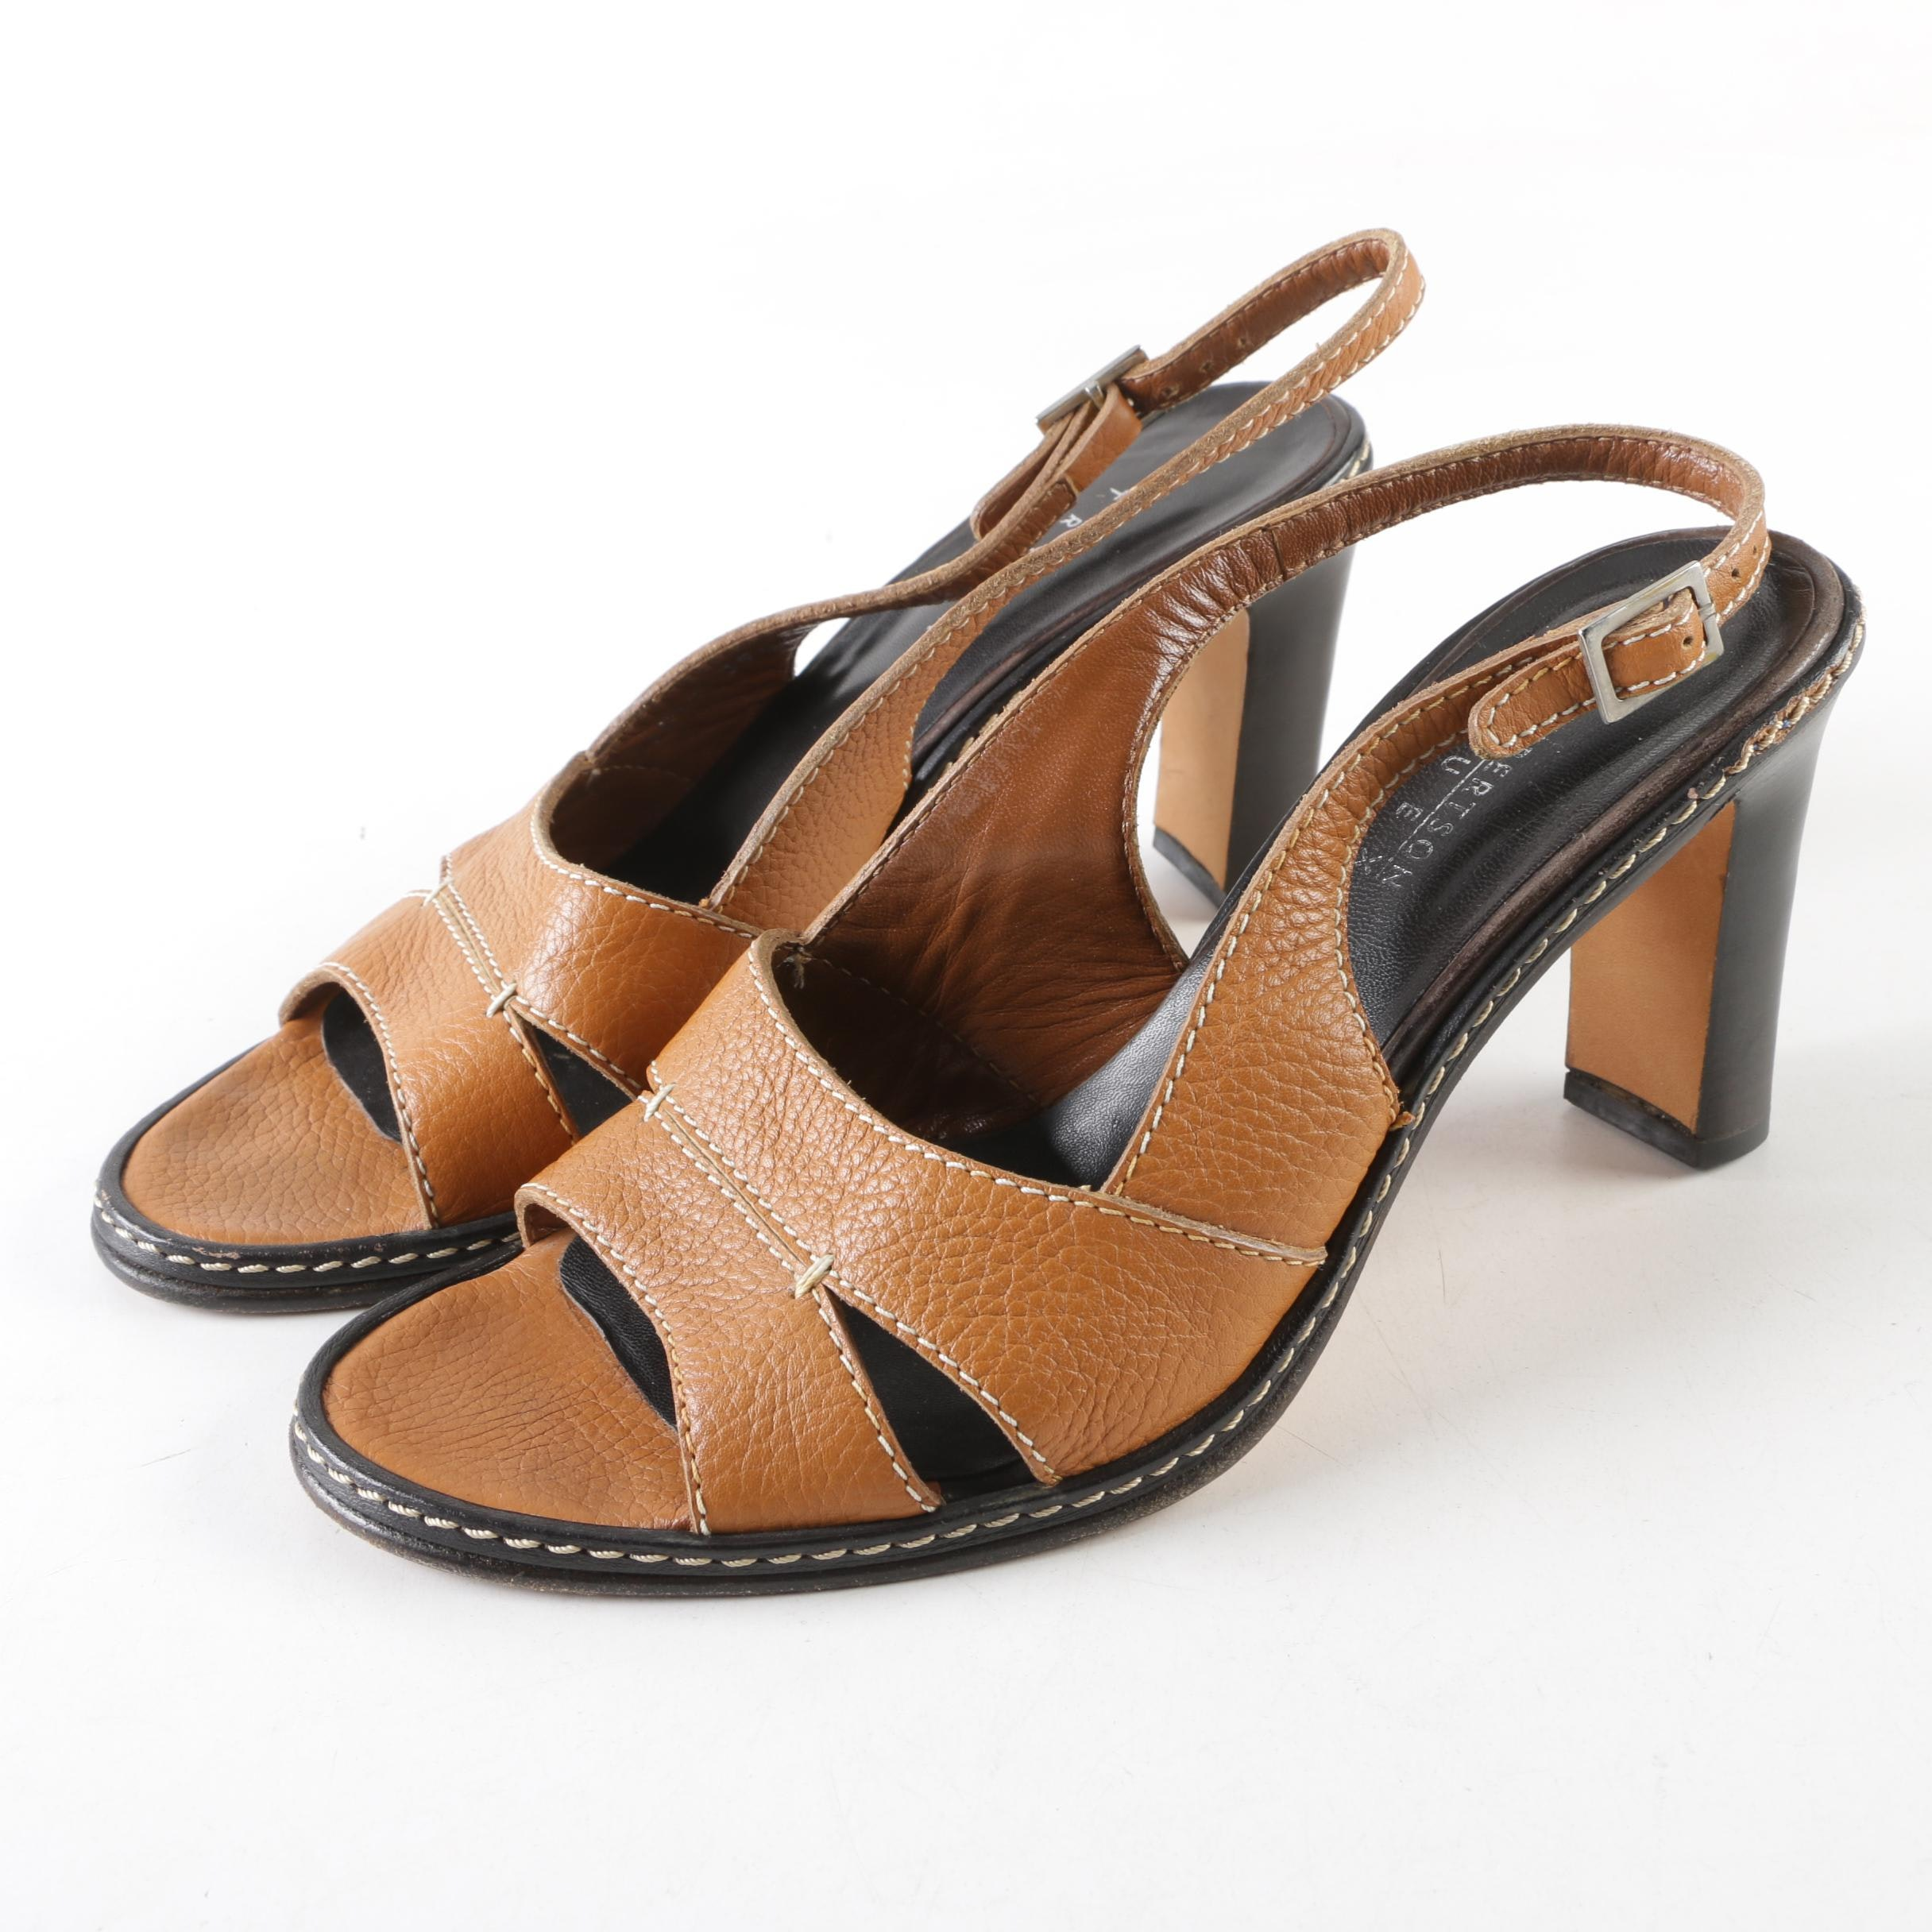 Lambertson Truex Leather Heeled Sandals with Contrast Stitching